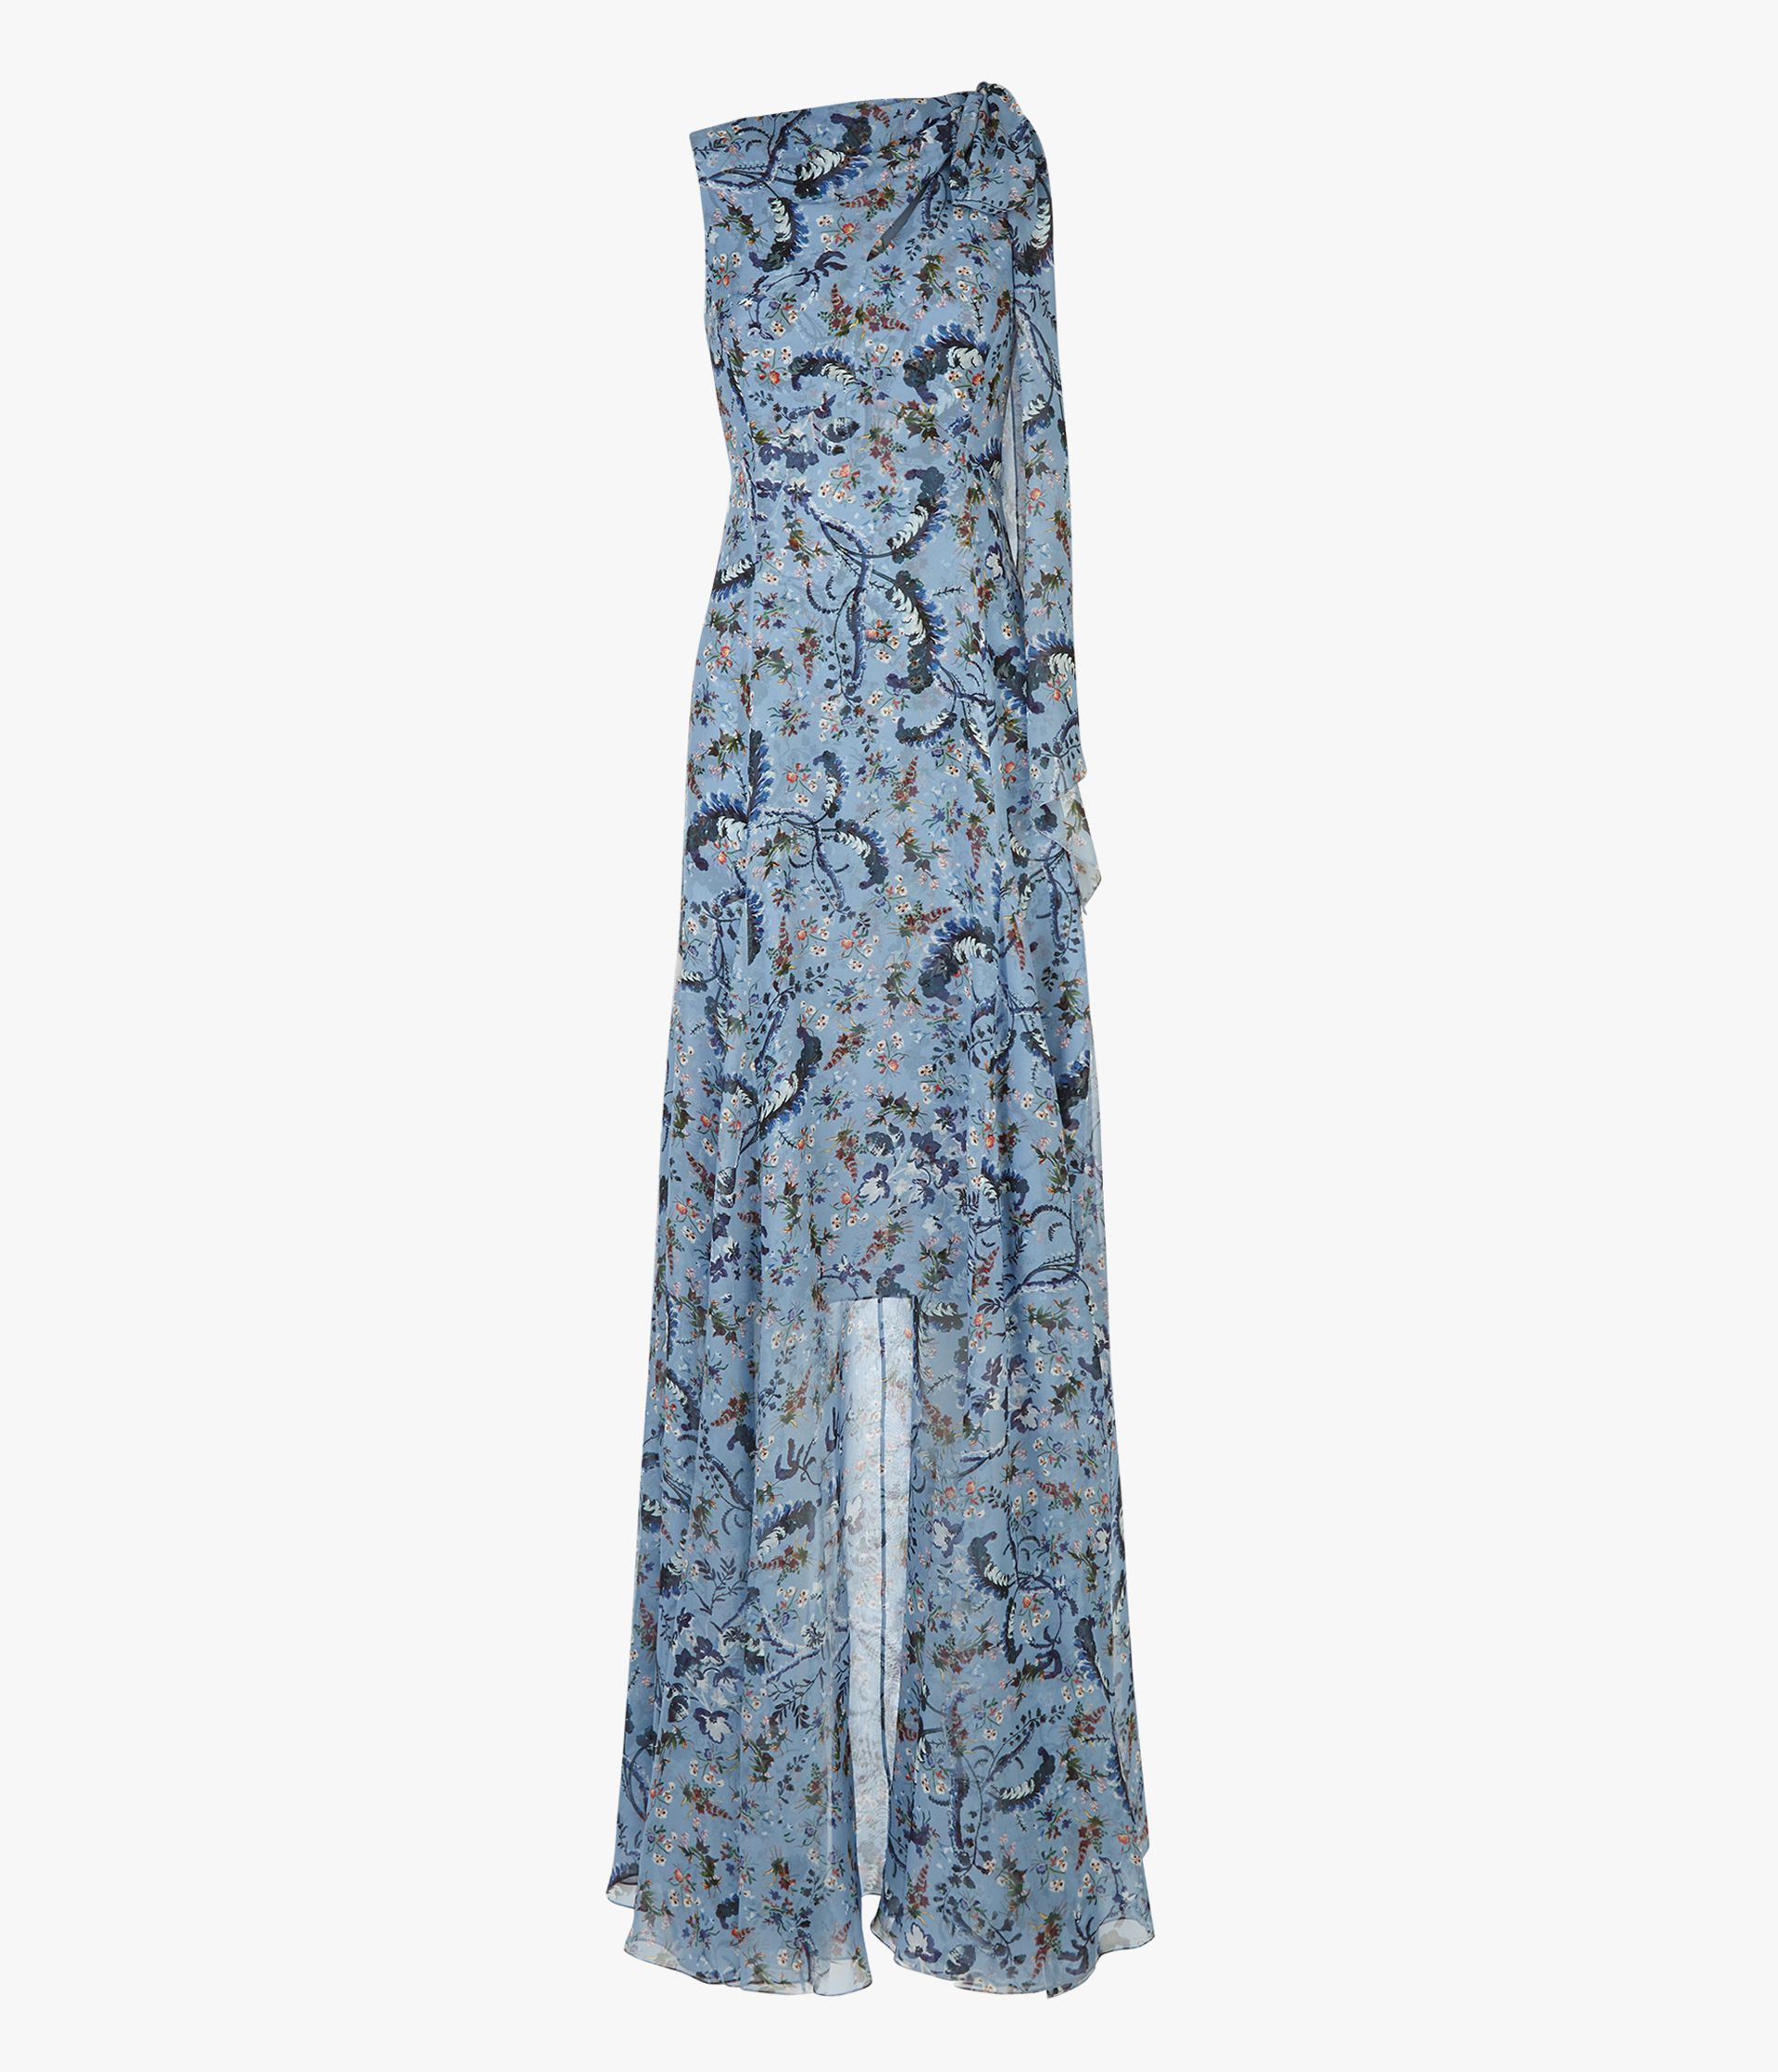 Chic Erdem Dress Ideas | Splendiferous Erdem Dress Sale